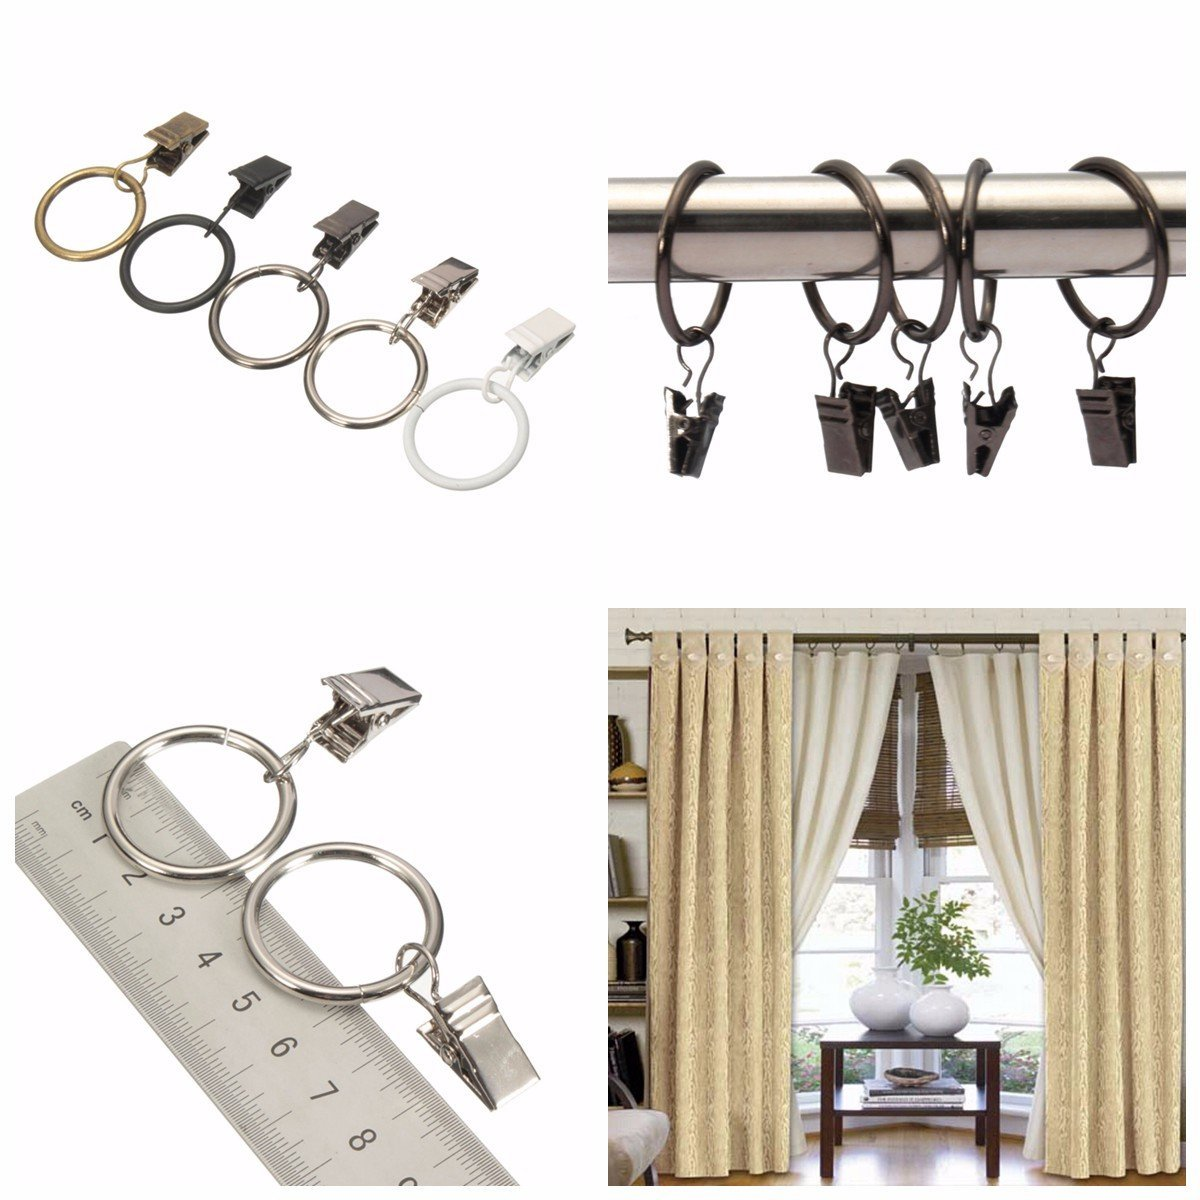 Drapery Snip - 40pcs Metal Window Bathroom Curtain Clip Pole Rod Voile Drapery 25mm Inner Diameter - Pall Lop Time Cut Short Magazine Cartridge Holder Mantle Dress Unknown